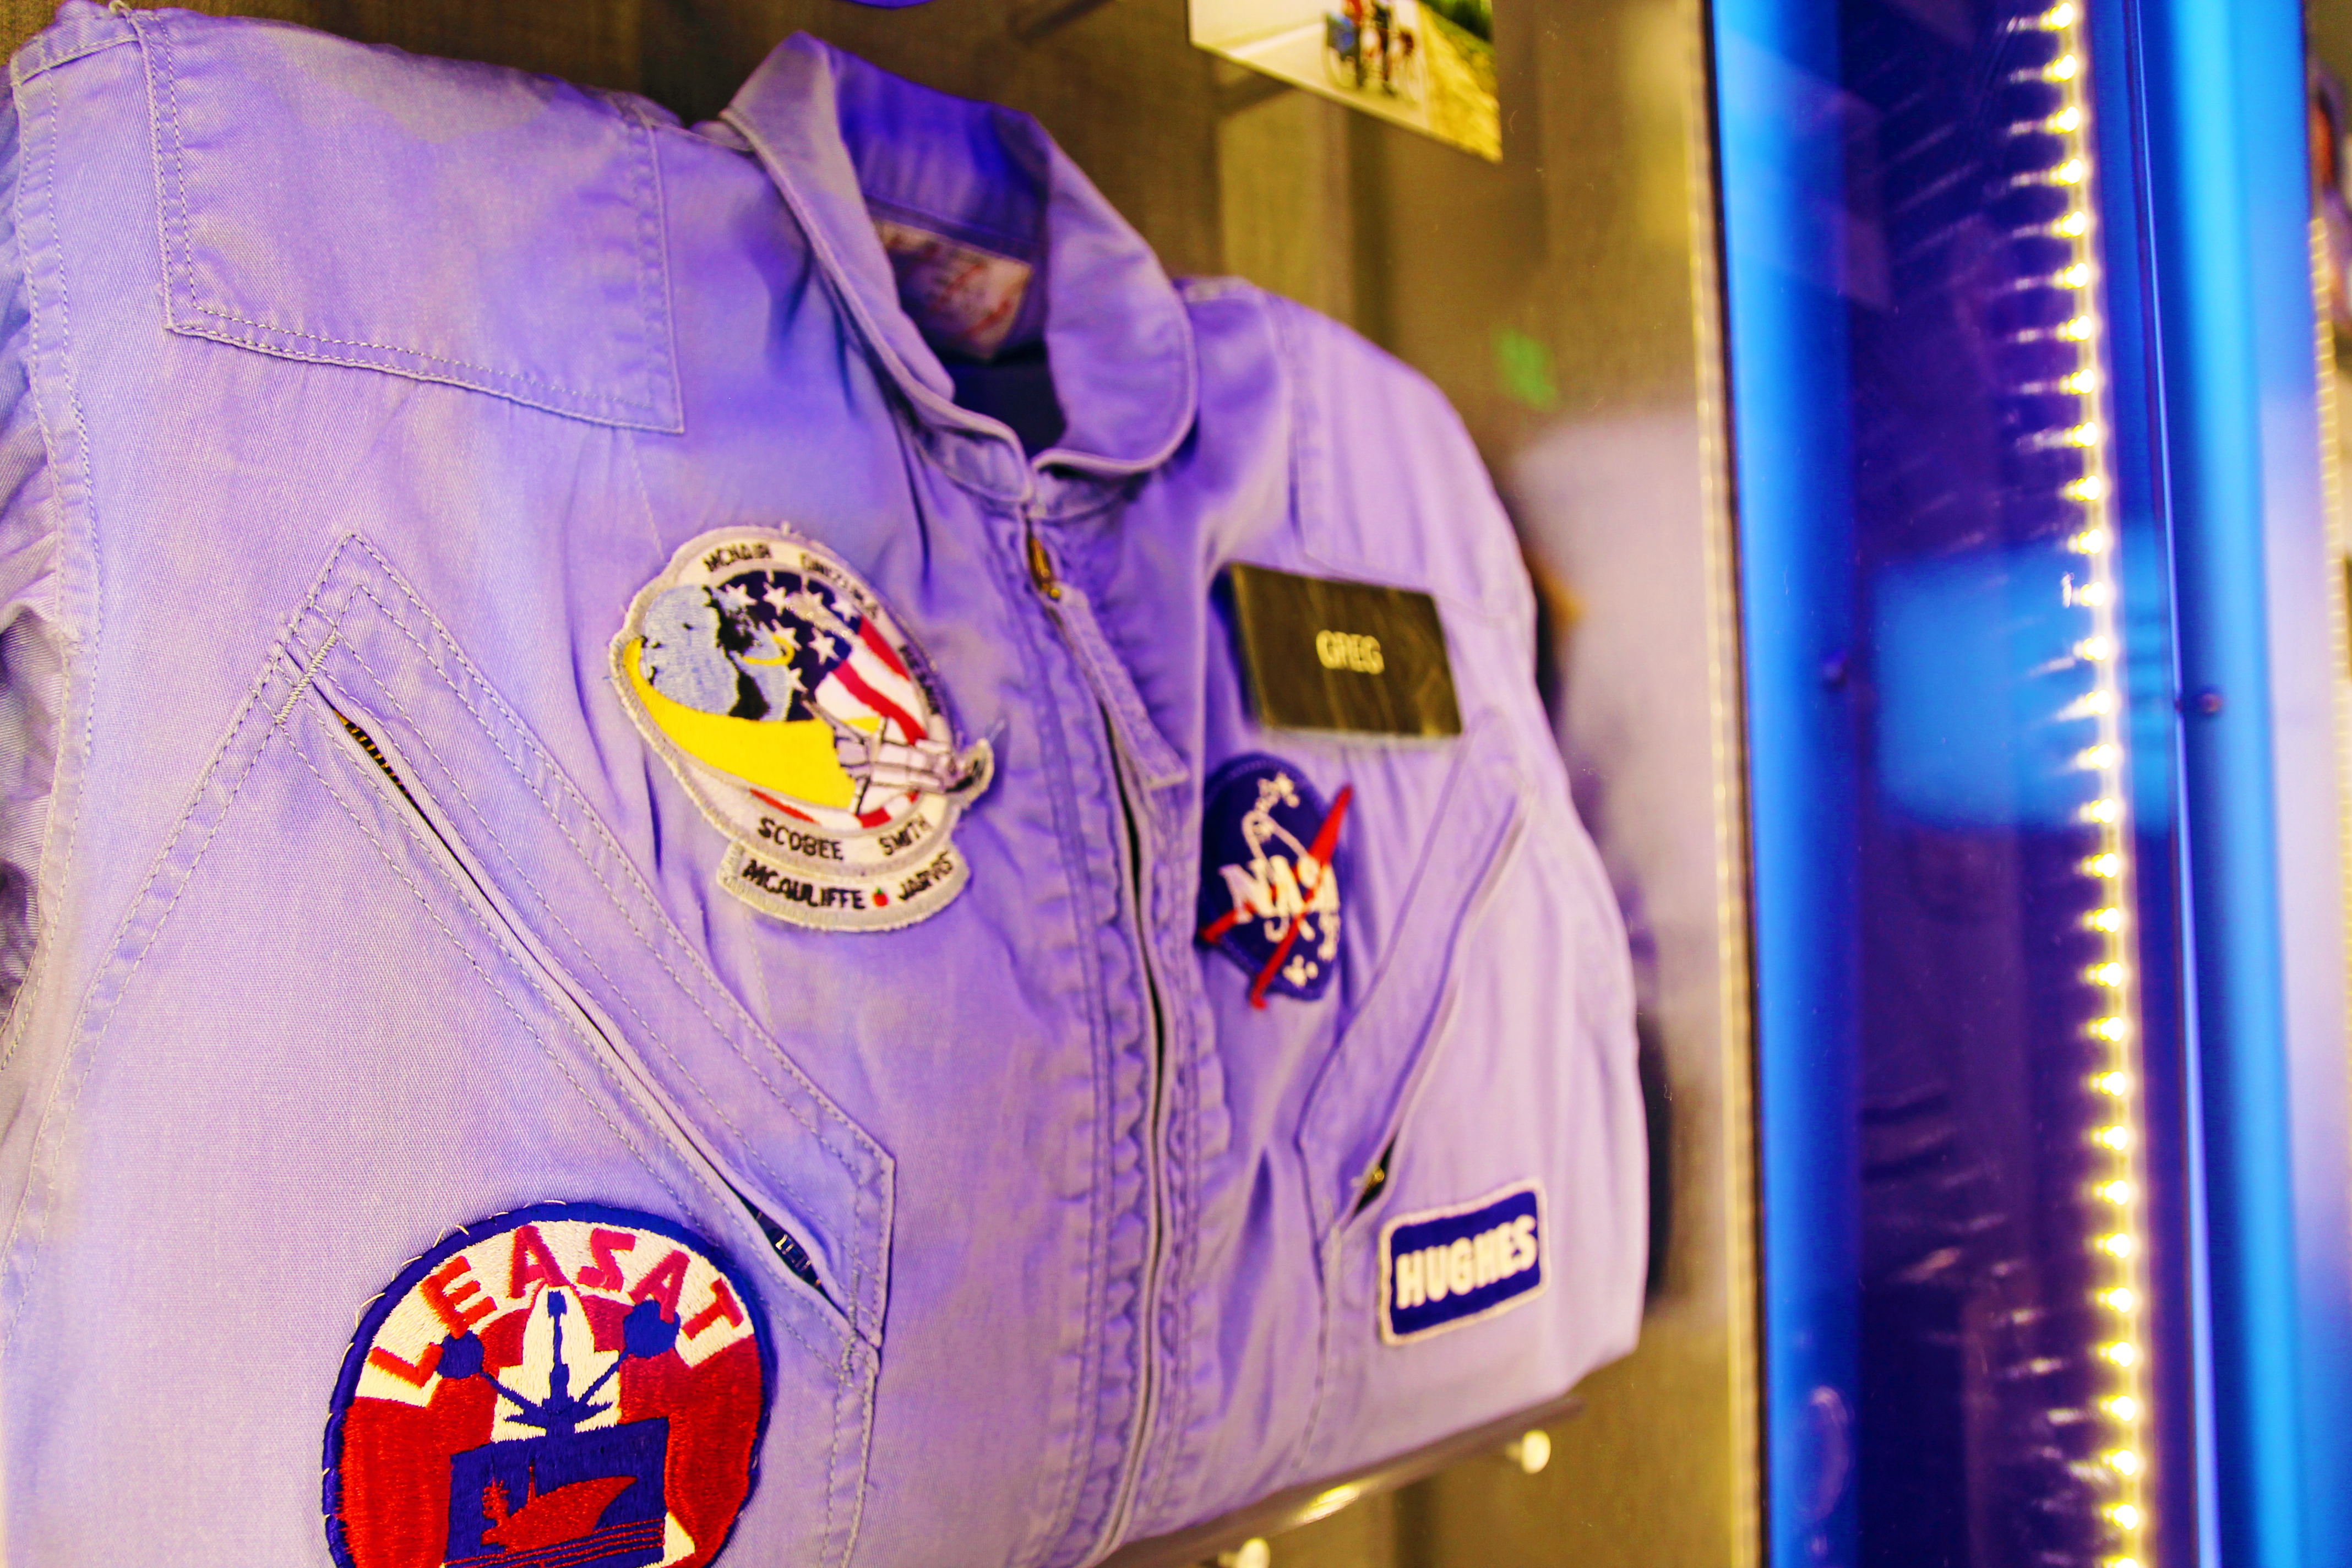 Visita ao Kennedy Space Center - Drawing Dreaming